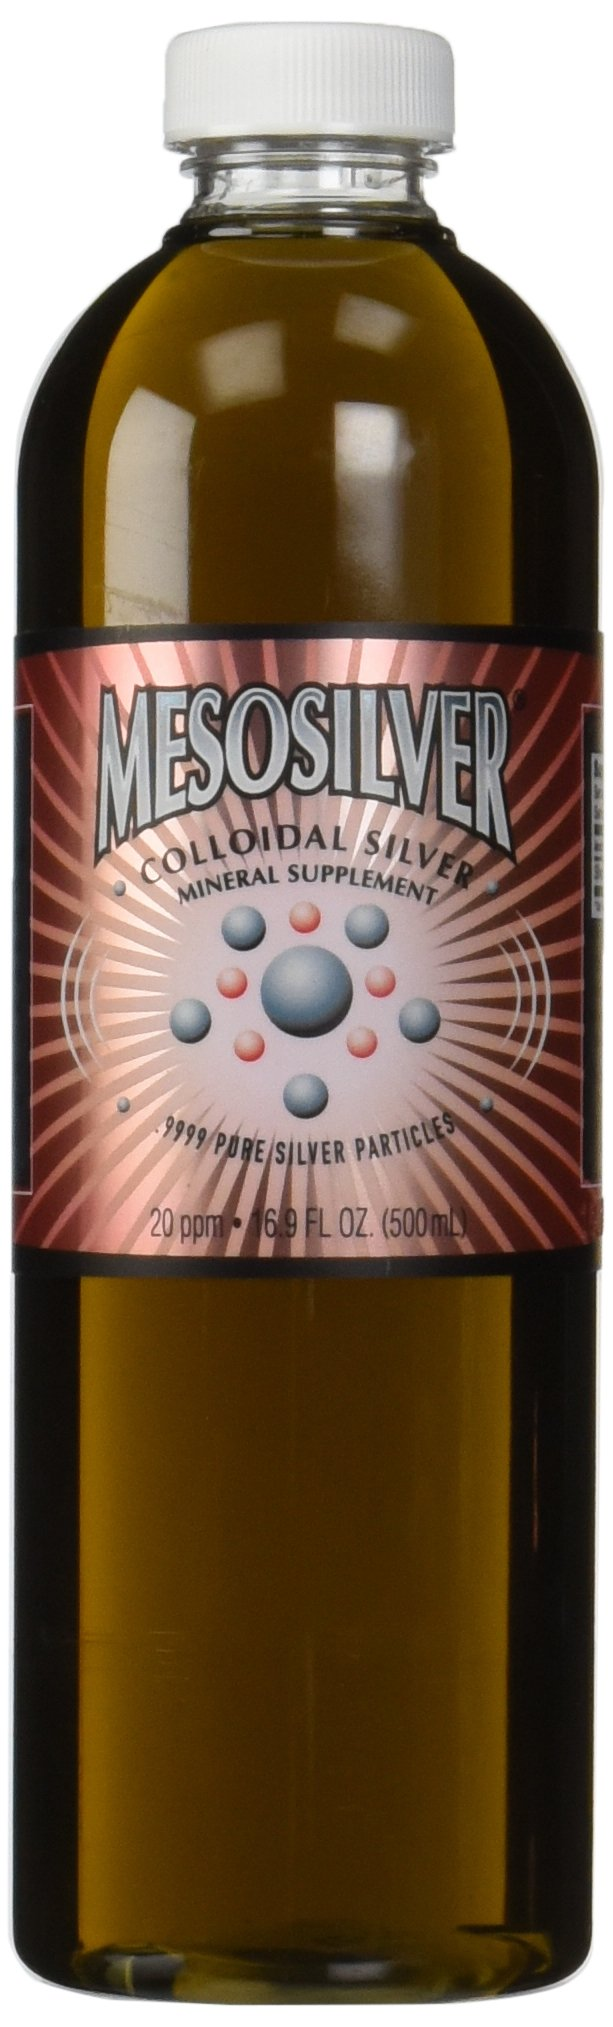 MesoSilver ® 20 ppm Colloidal Silver, 500 mL/16.9 Oz by Purest Colloids